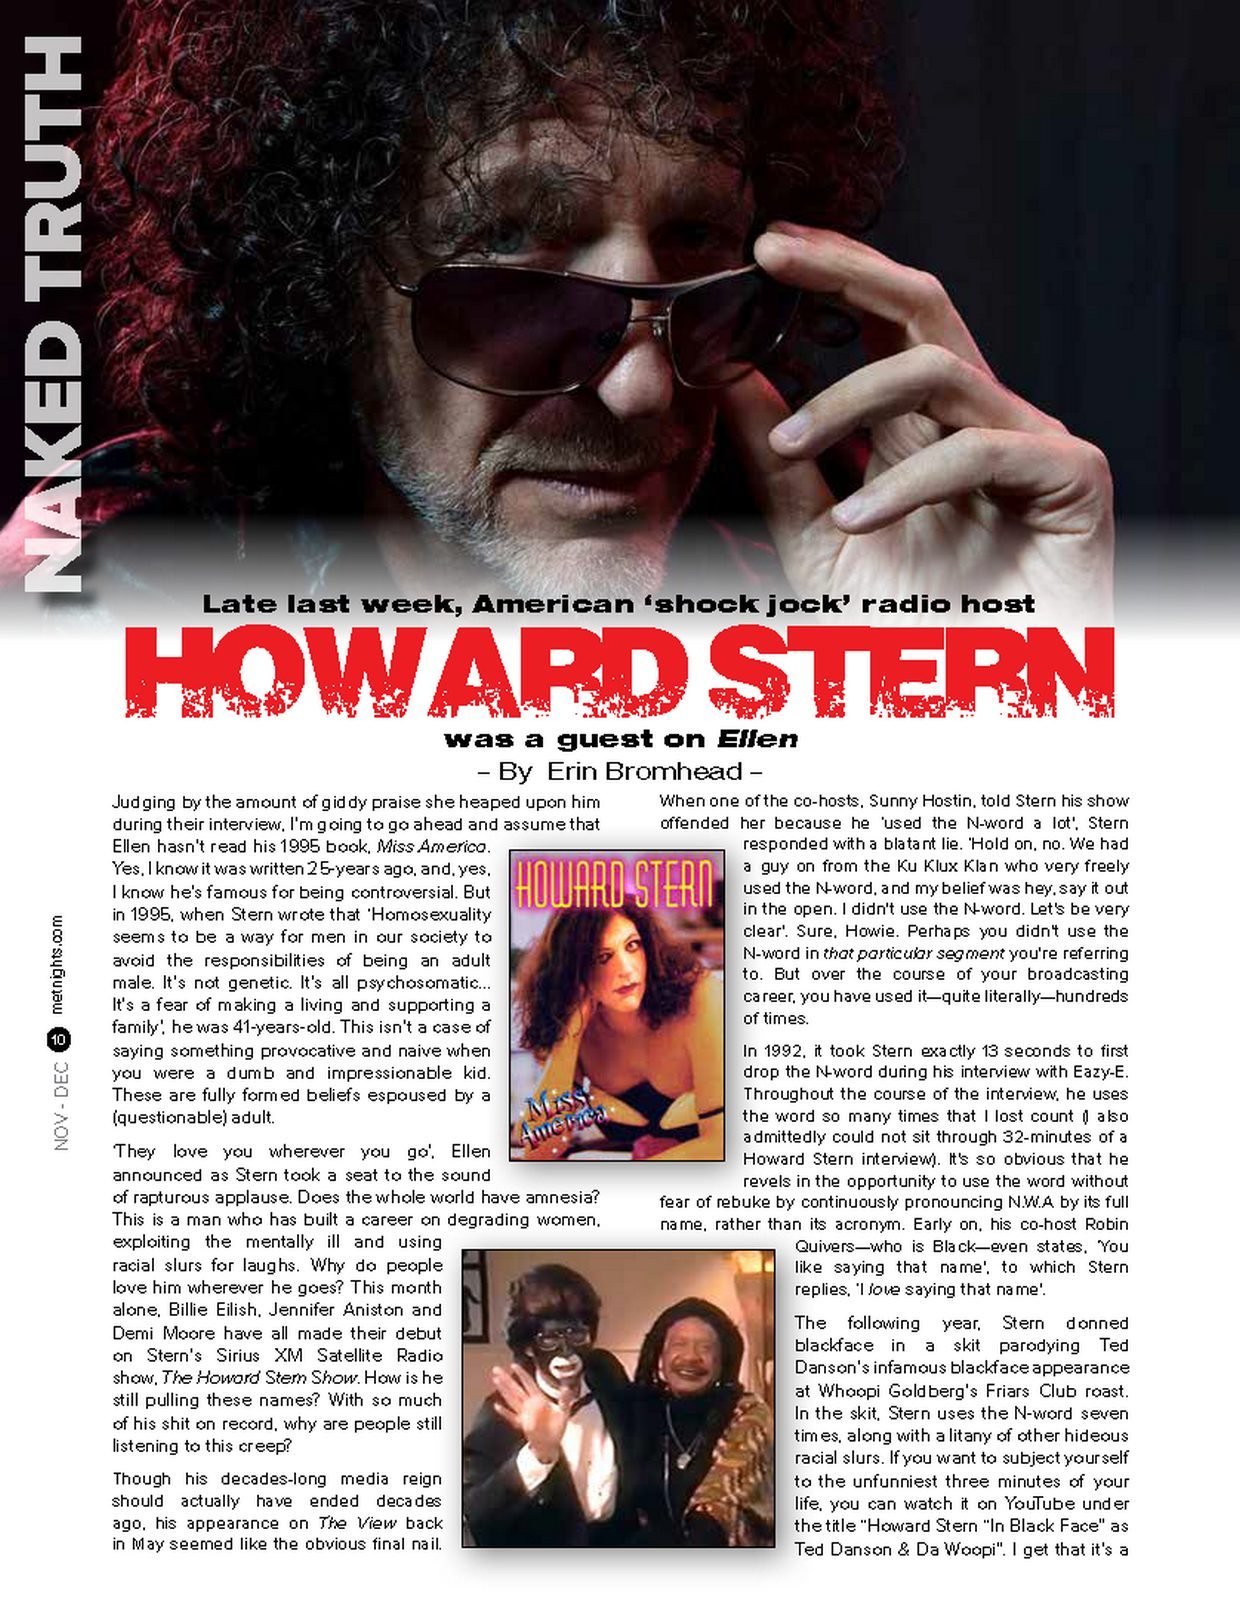 HOWARD STERN was a guest on Ellen